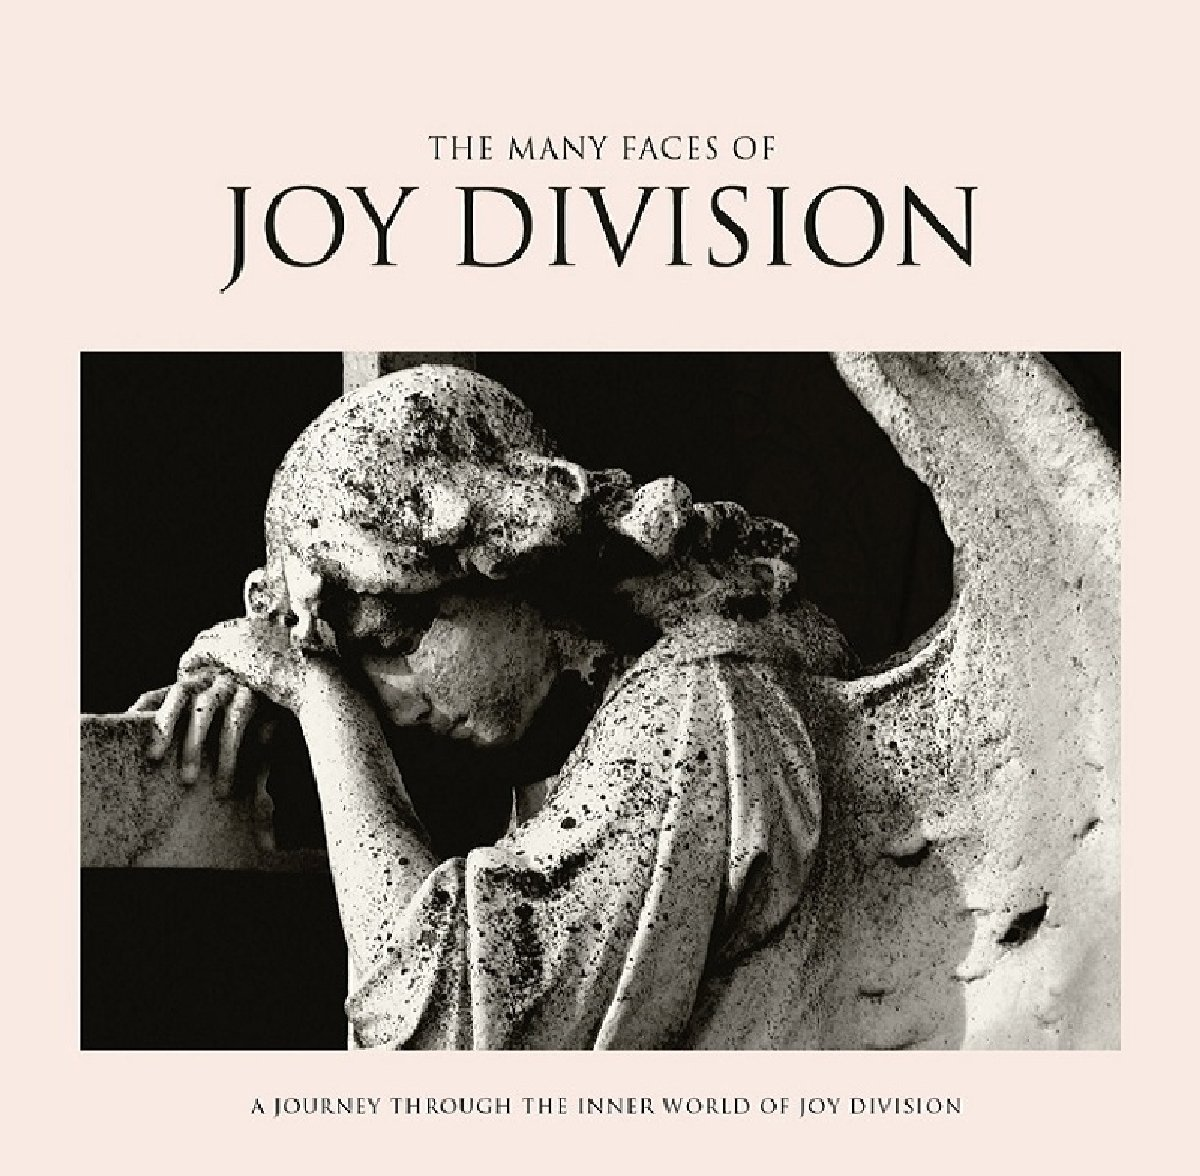 Cd triplo joy division the many faces of joy division a cd triplo joy division the many faces of joy division a journey through the inner world of joy division r 4500 fandeluxe Gallery